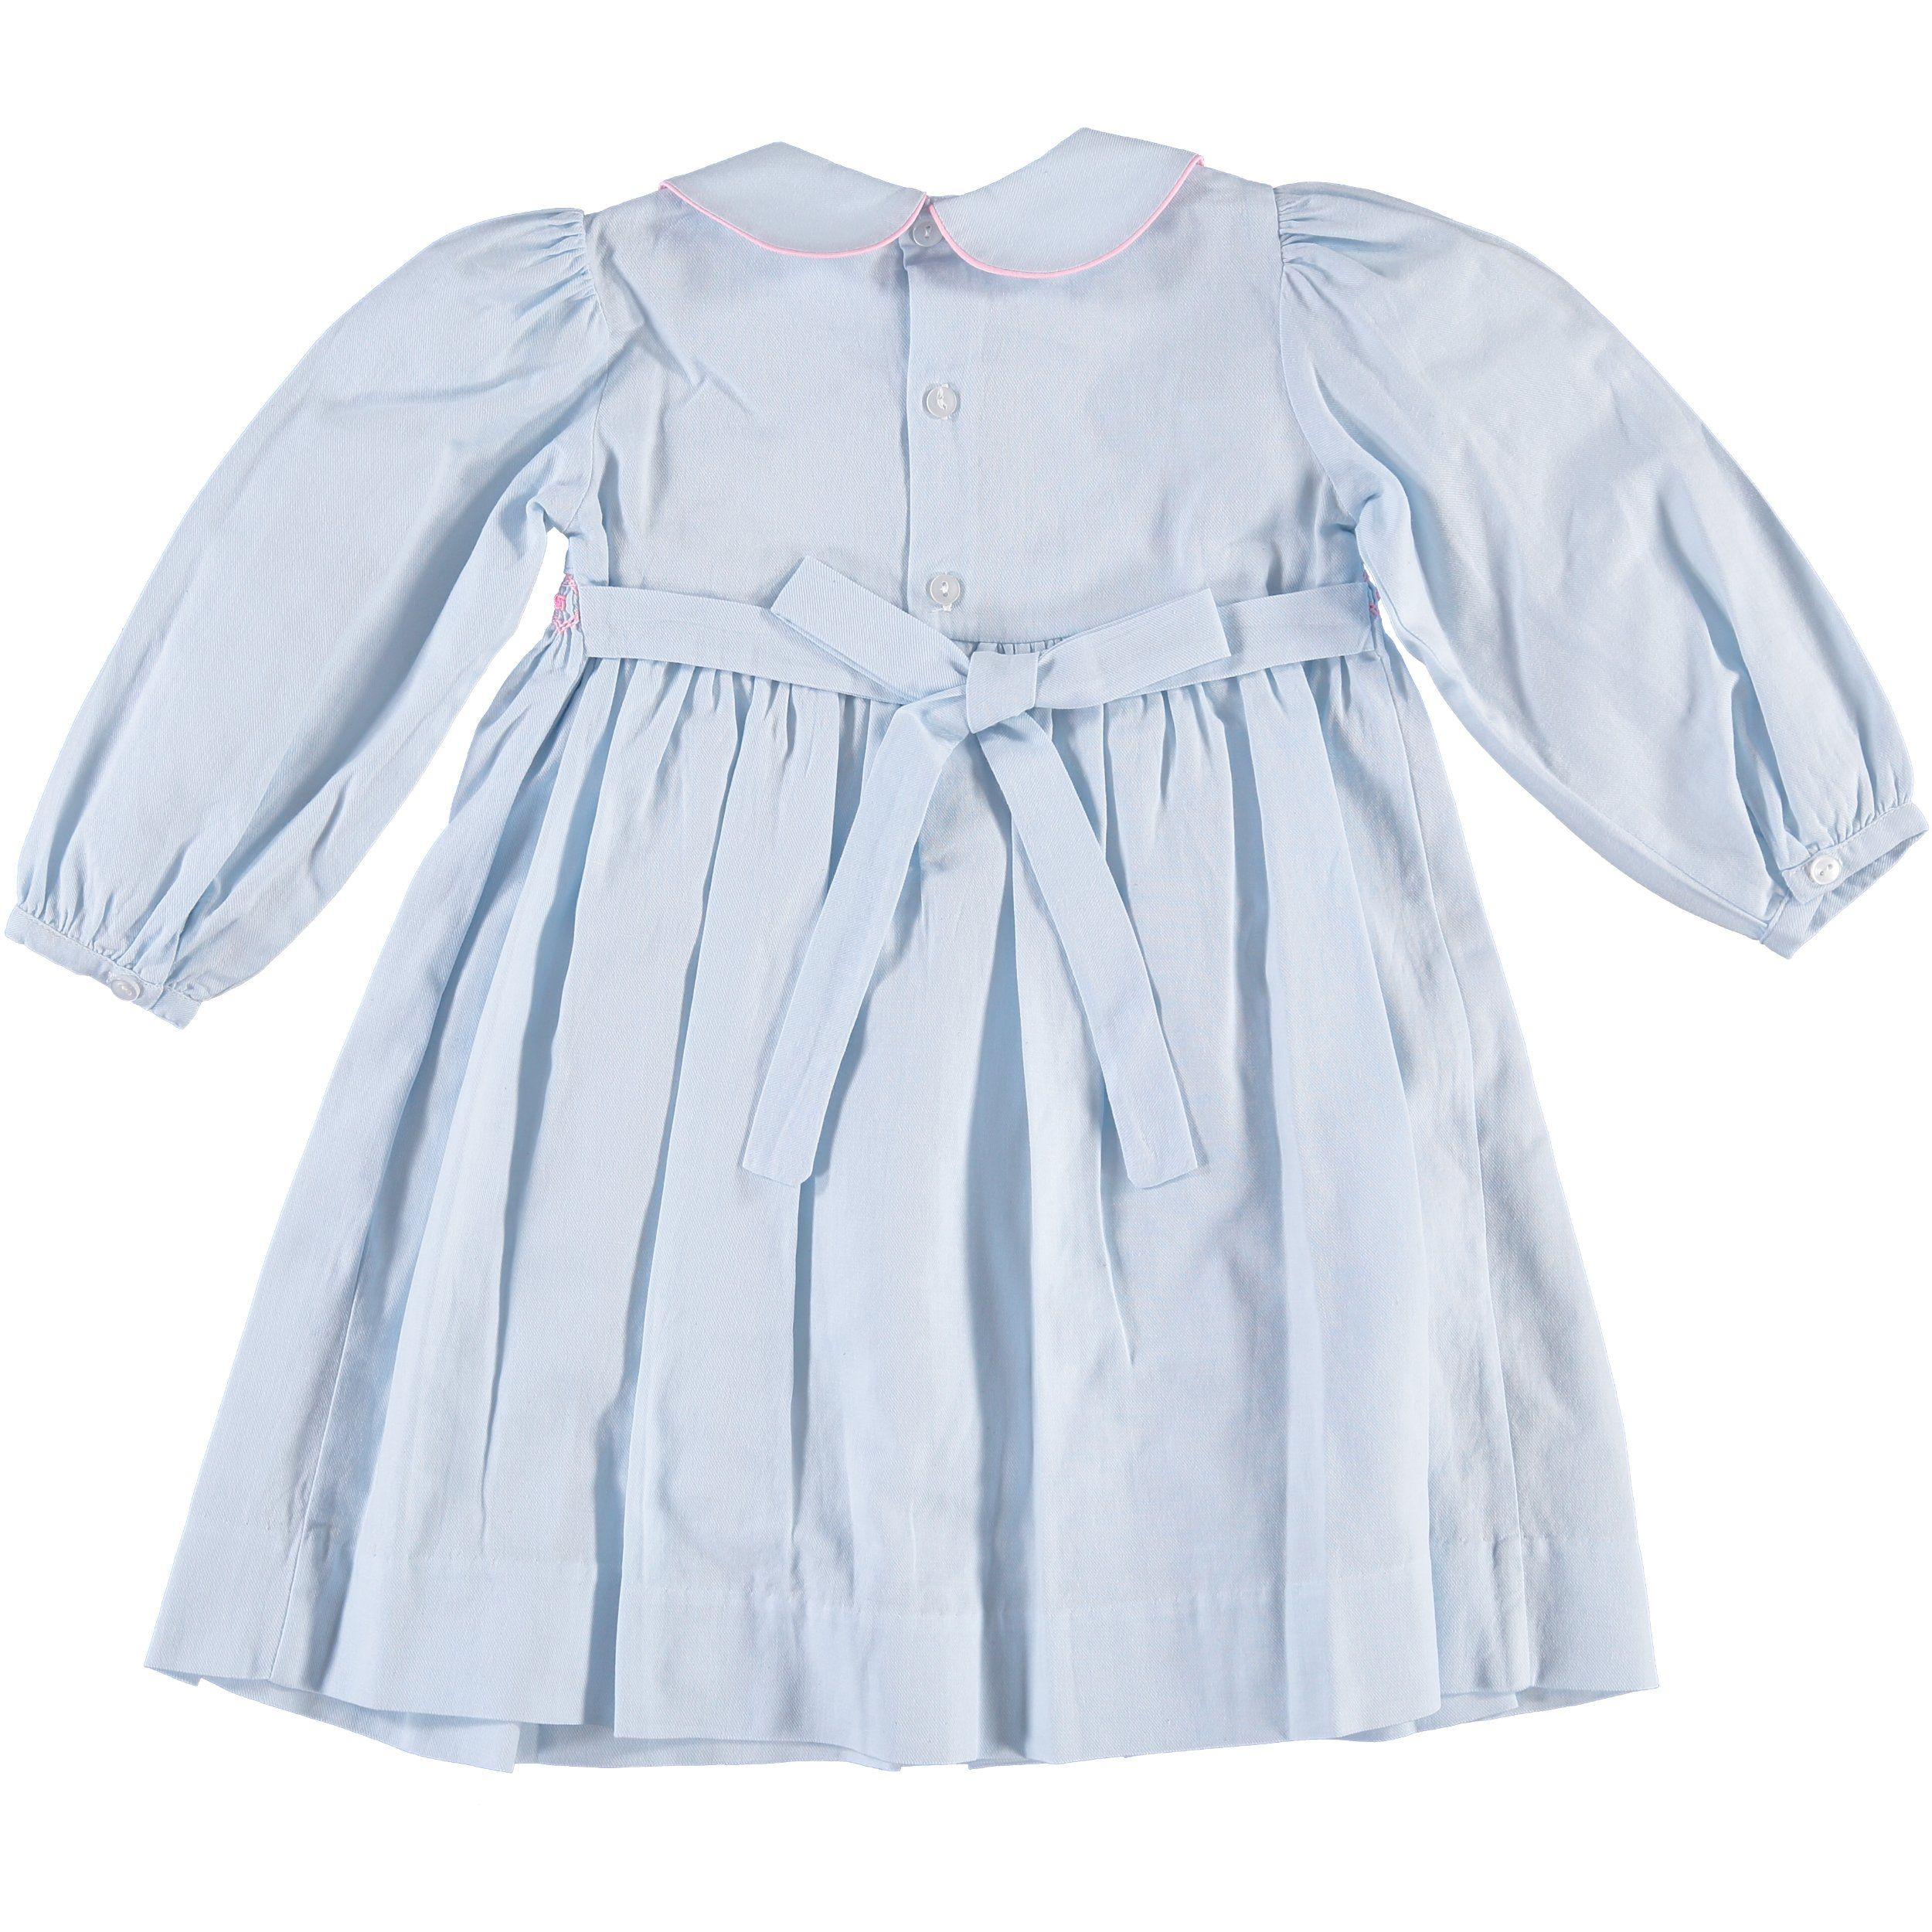 3T Carriage Boutique Girls Long Sleeve Blue Flower Dress